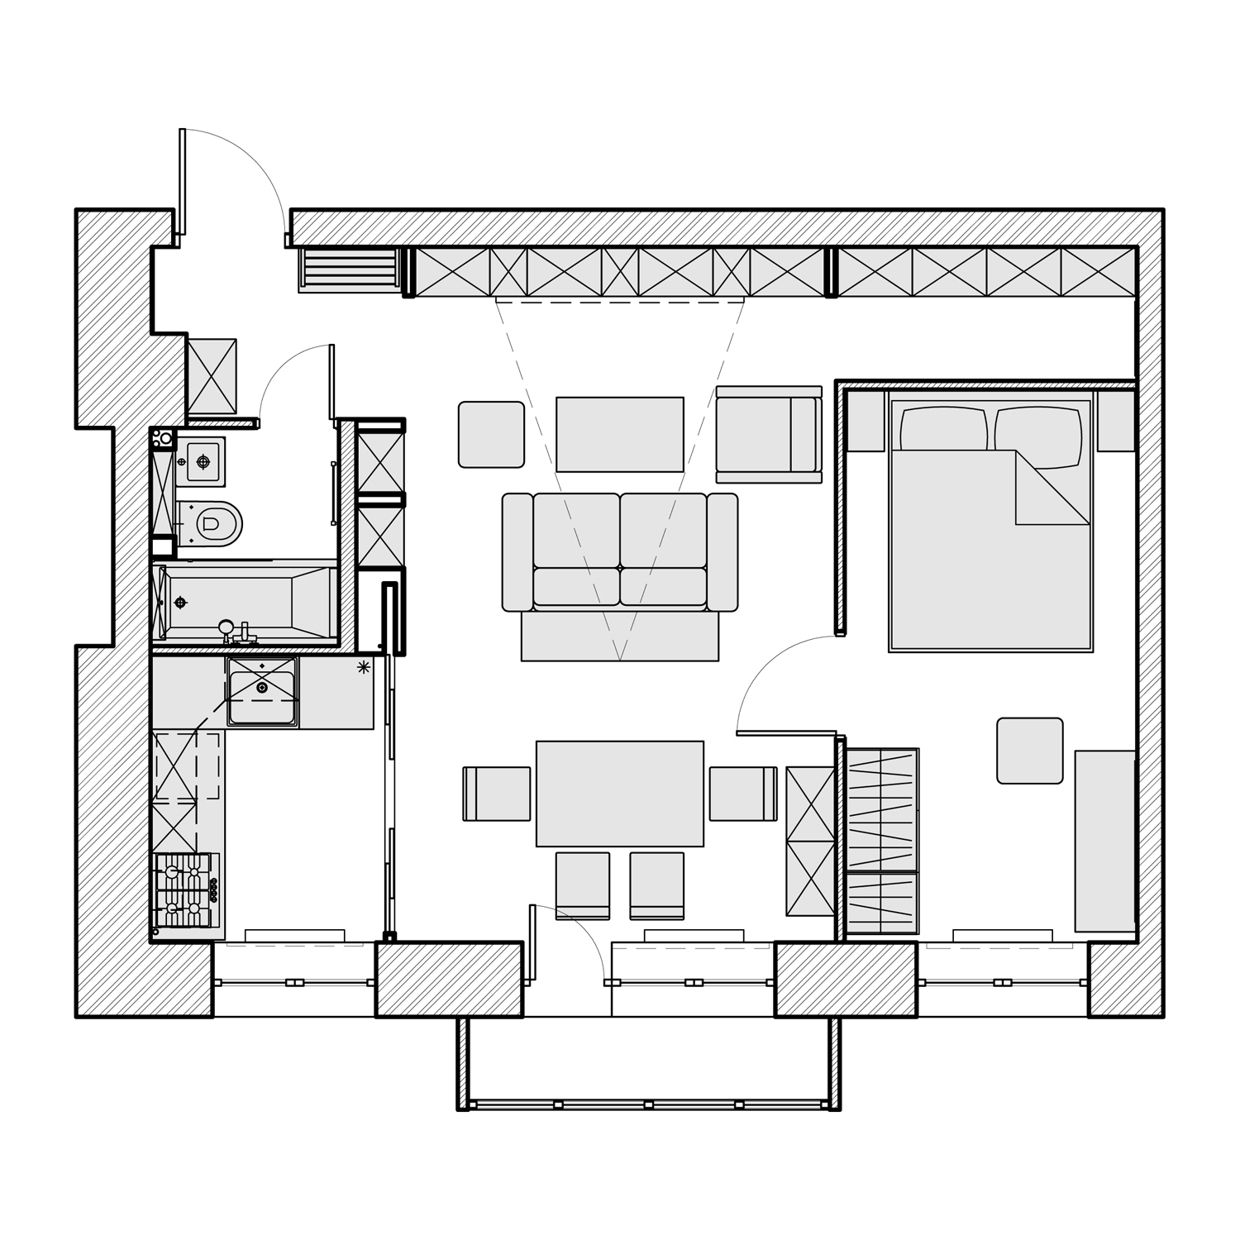 3 Beautiful Homes Under 500 Square Feet Small House Plans Bedroom House Plans House Plans